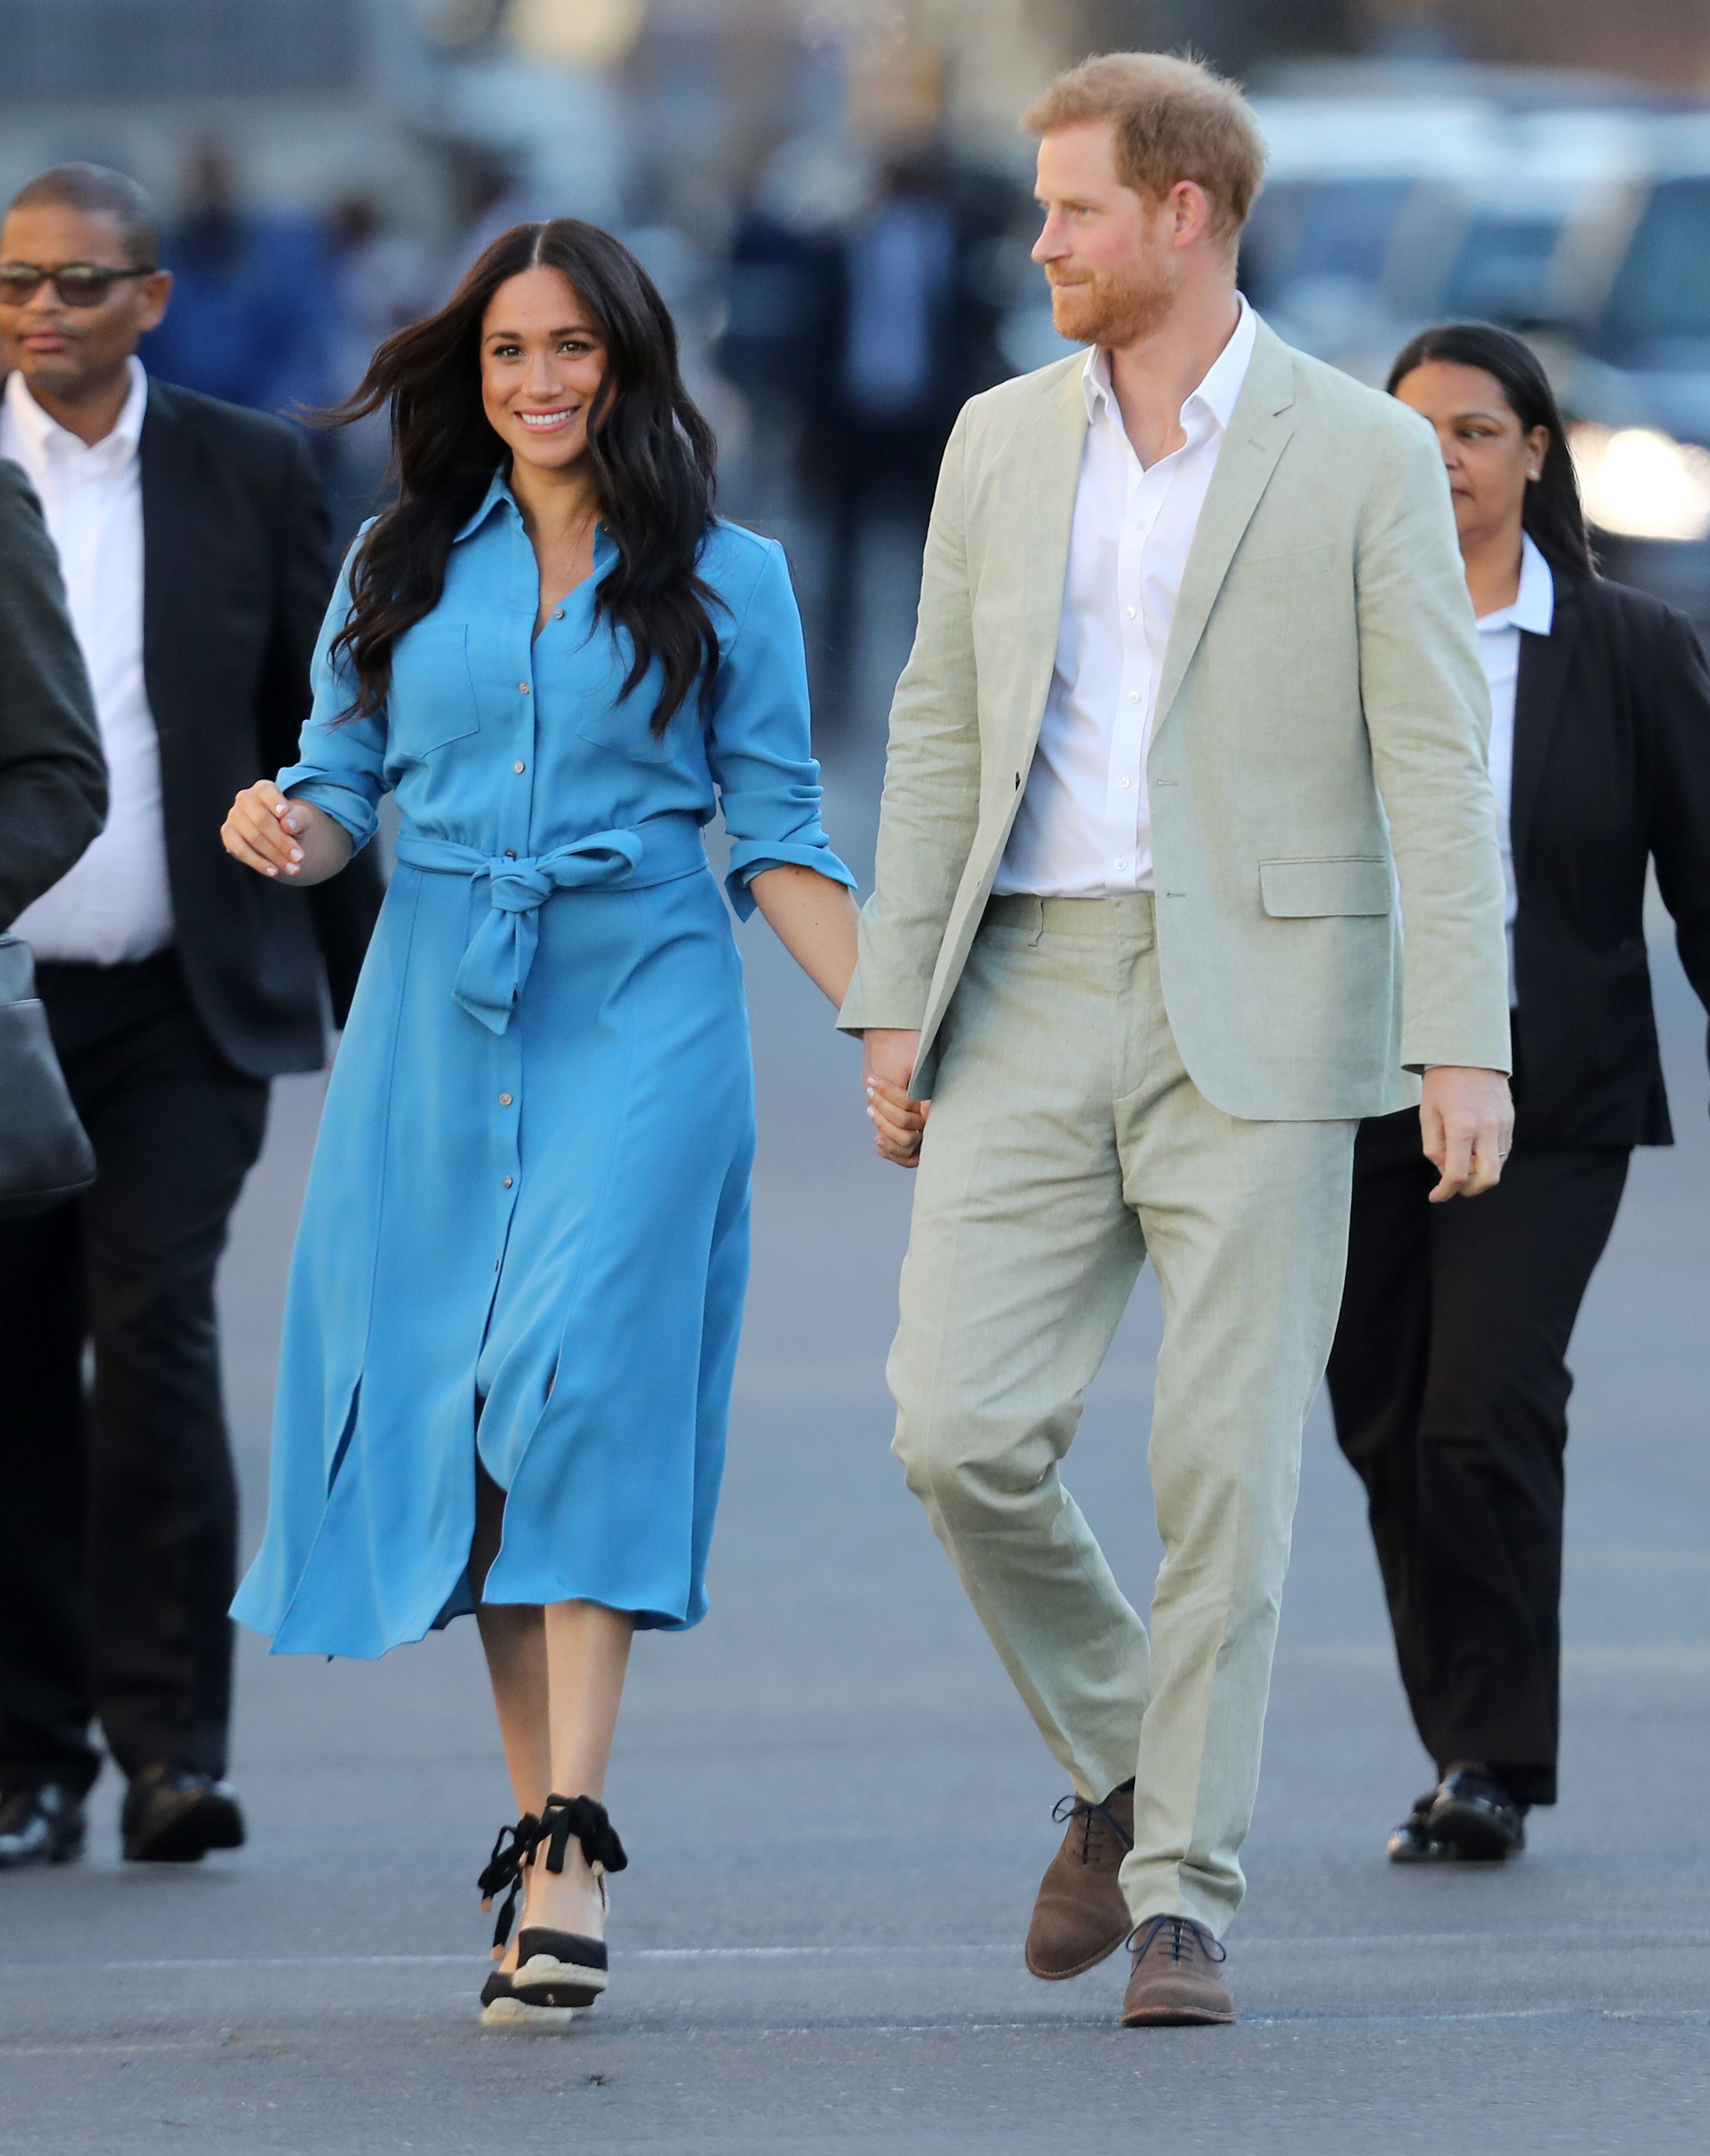 Meghan Markle and Prince Harry during their South Africa tour.   Source: Getty Images